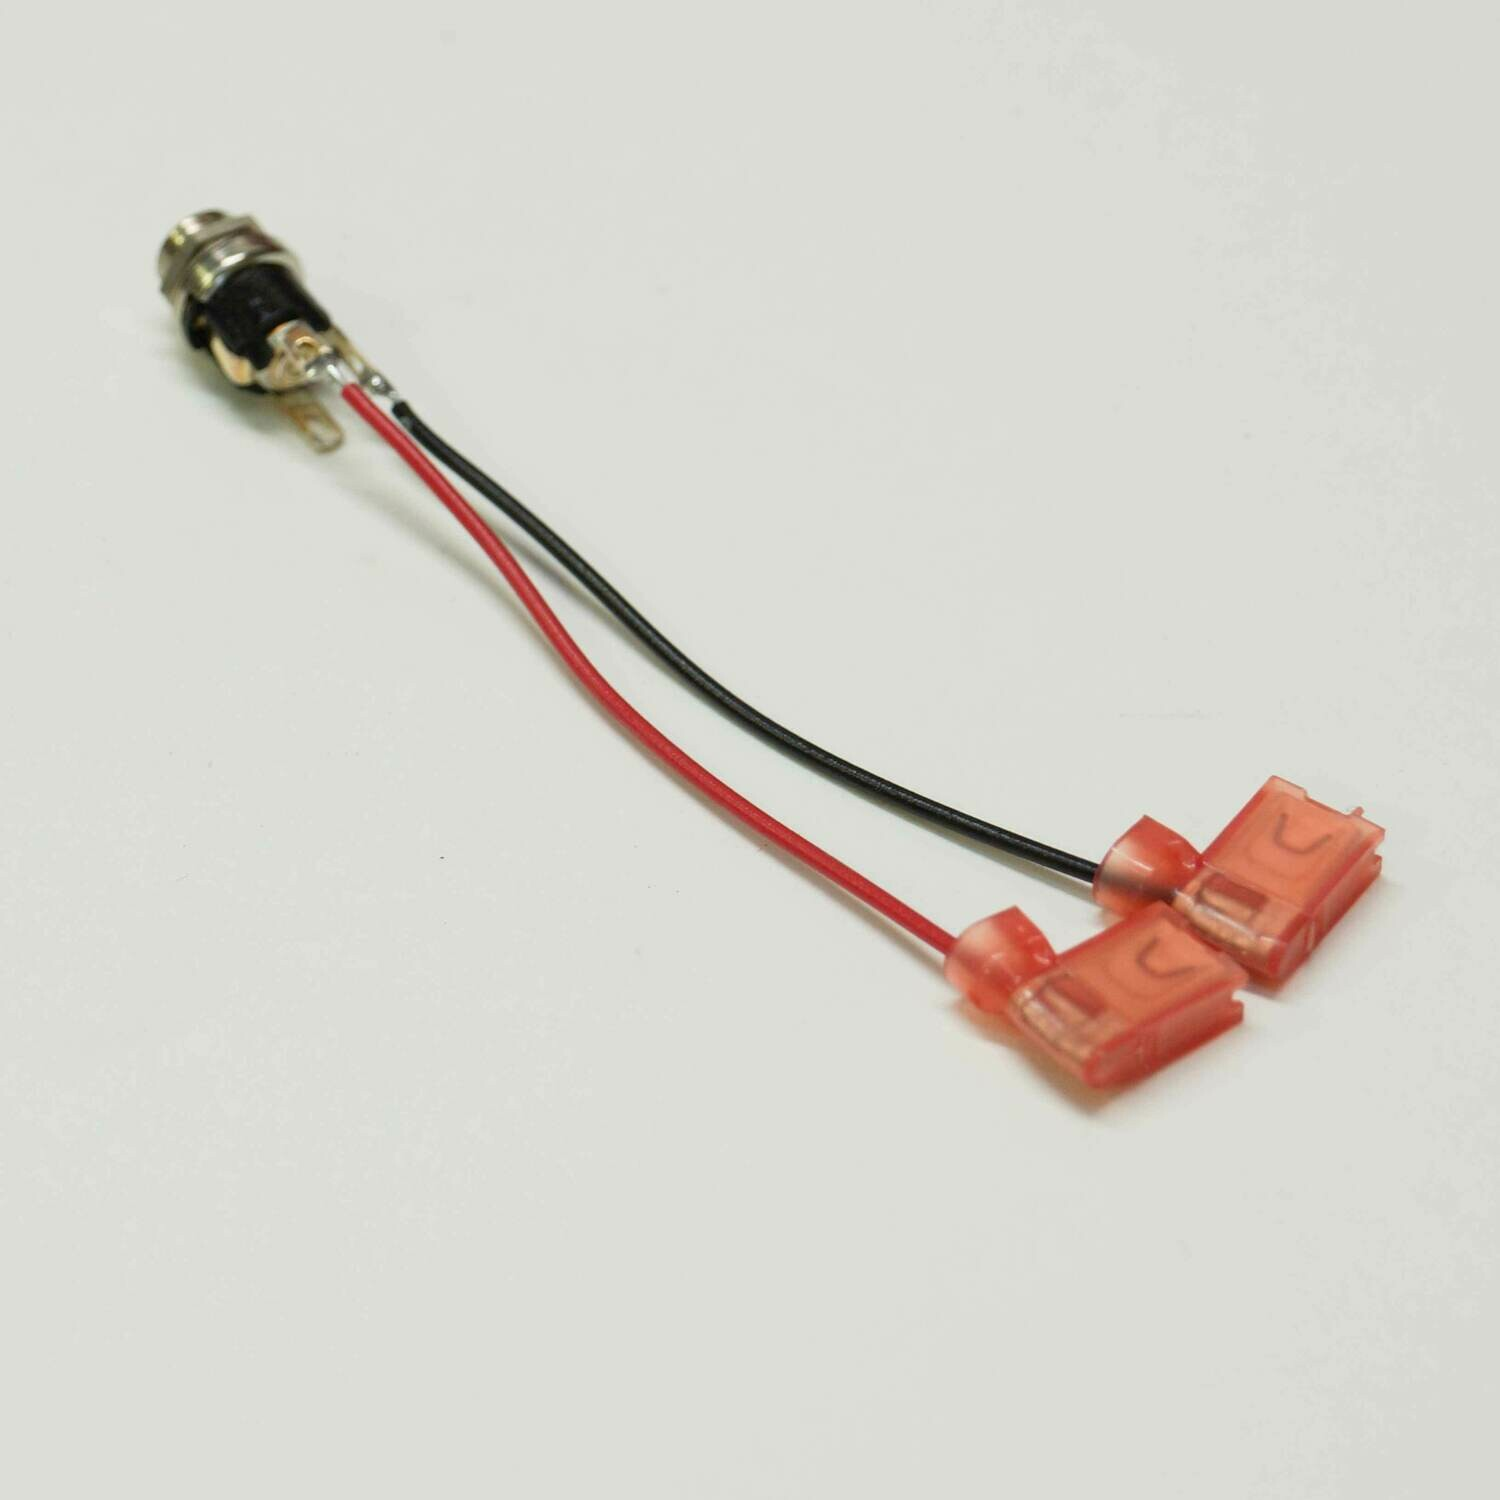 BGO-11 Pigtail Charger Female End